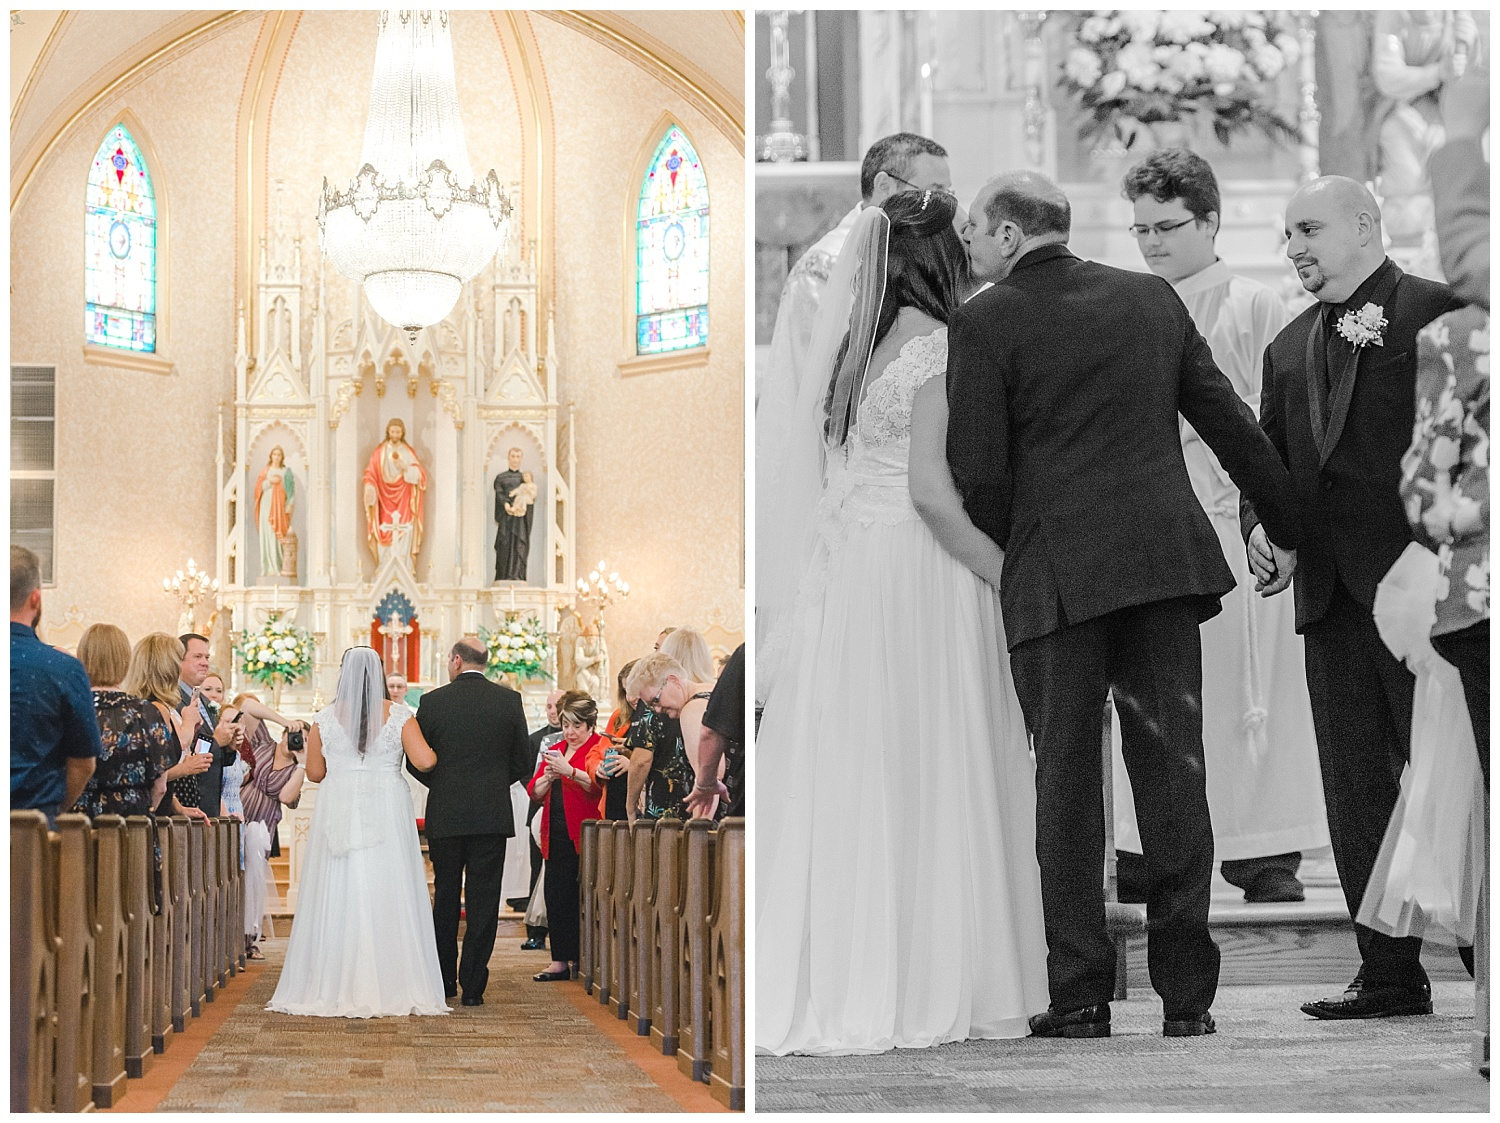 A Black and Gold Catholic Church Wedding in Wilkes Barre Pennsylvania by lehigh valley pennsylvania based wedding and lifestyle photographer Jeannie Lytle of Lytle Photography   Company (15).jpg